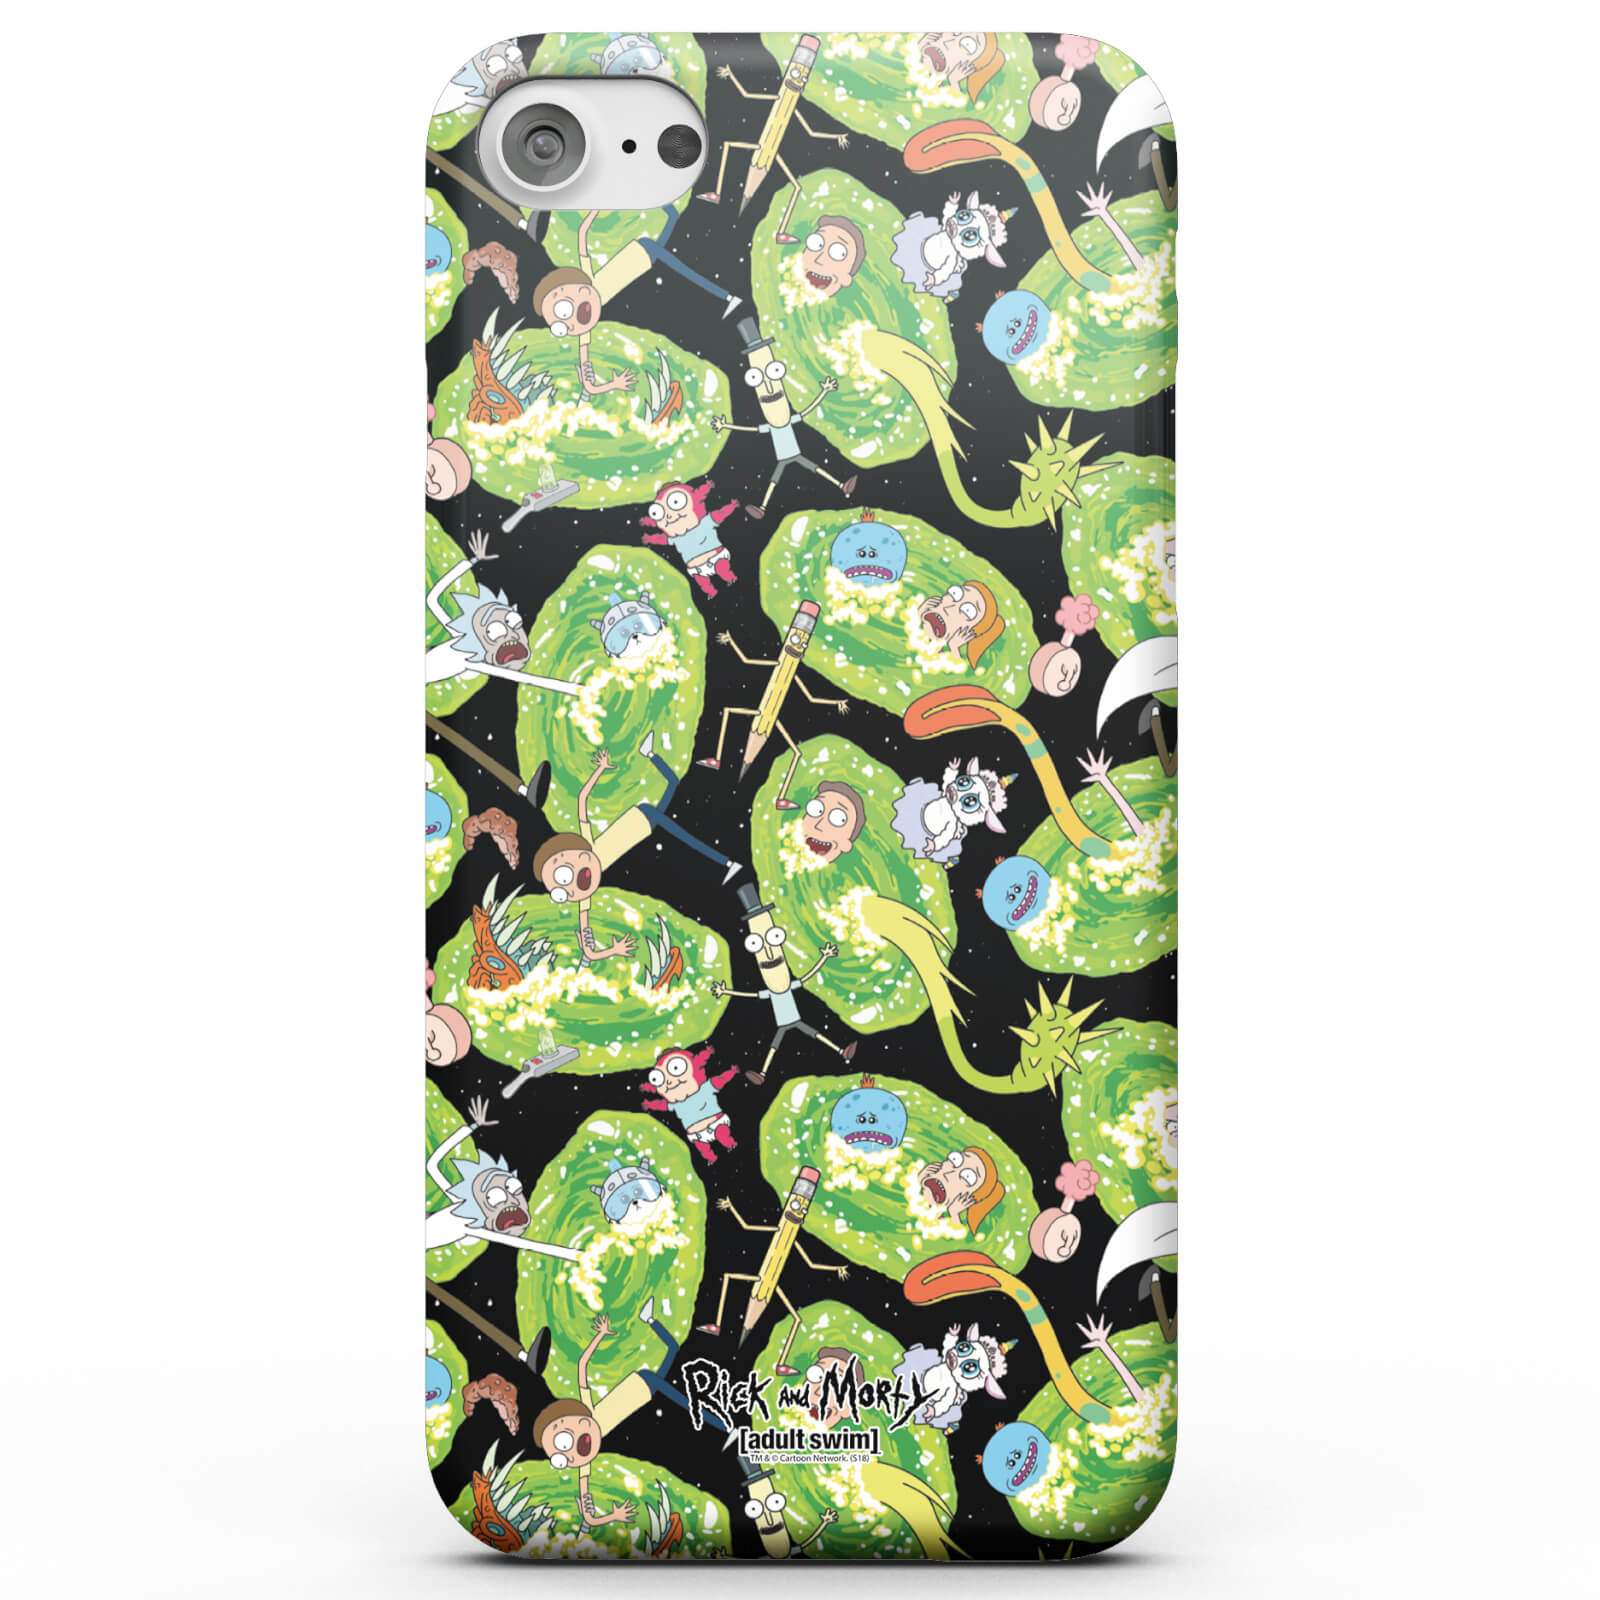 Funda Móvil Rick y Morty Portals Characters para iPhone y Android - iPhone 8 Plus - Carcasa doble capa - Mate de Rick and Morty